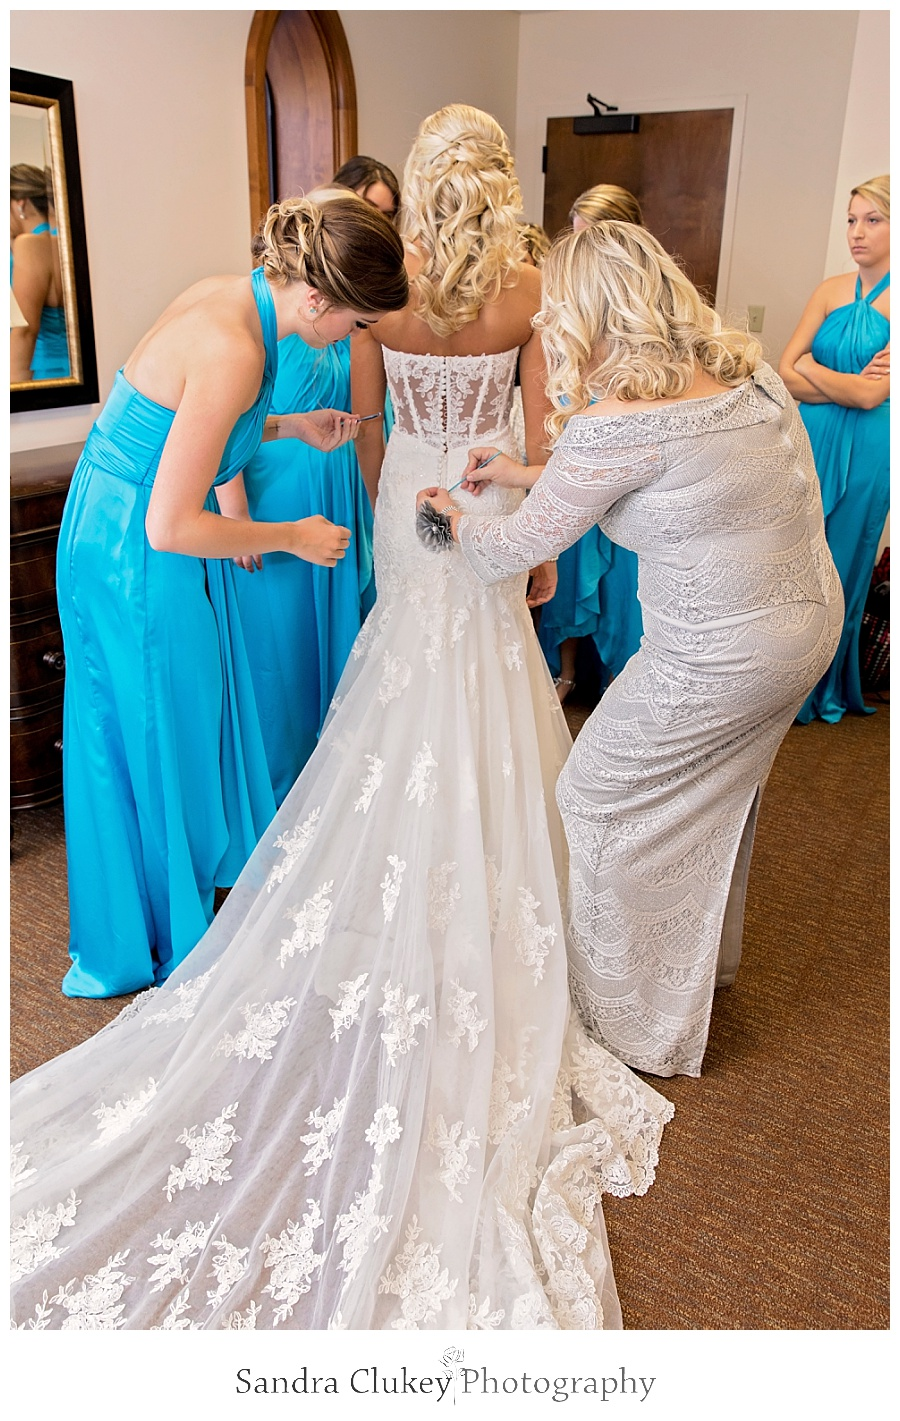 Mom helping bride with final touches on dress